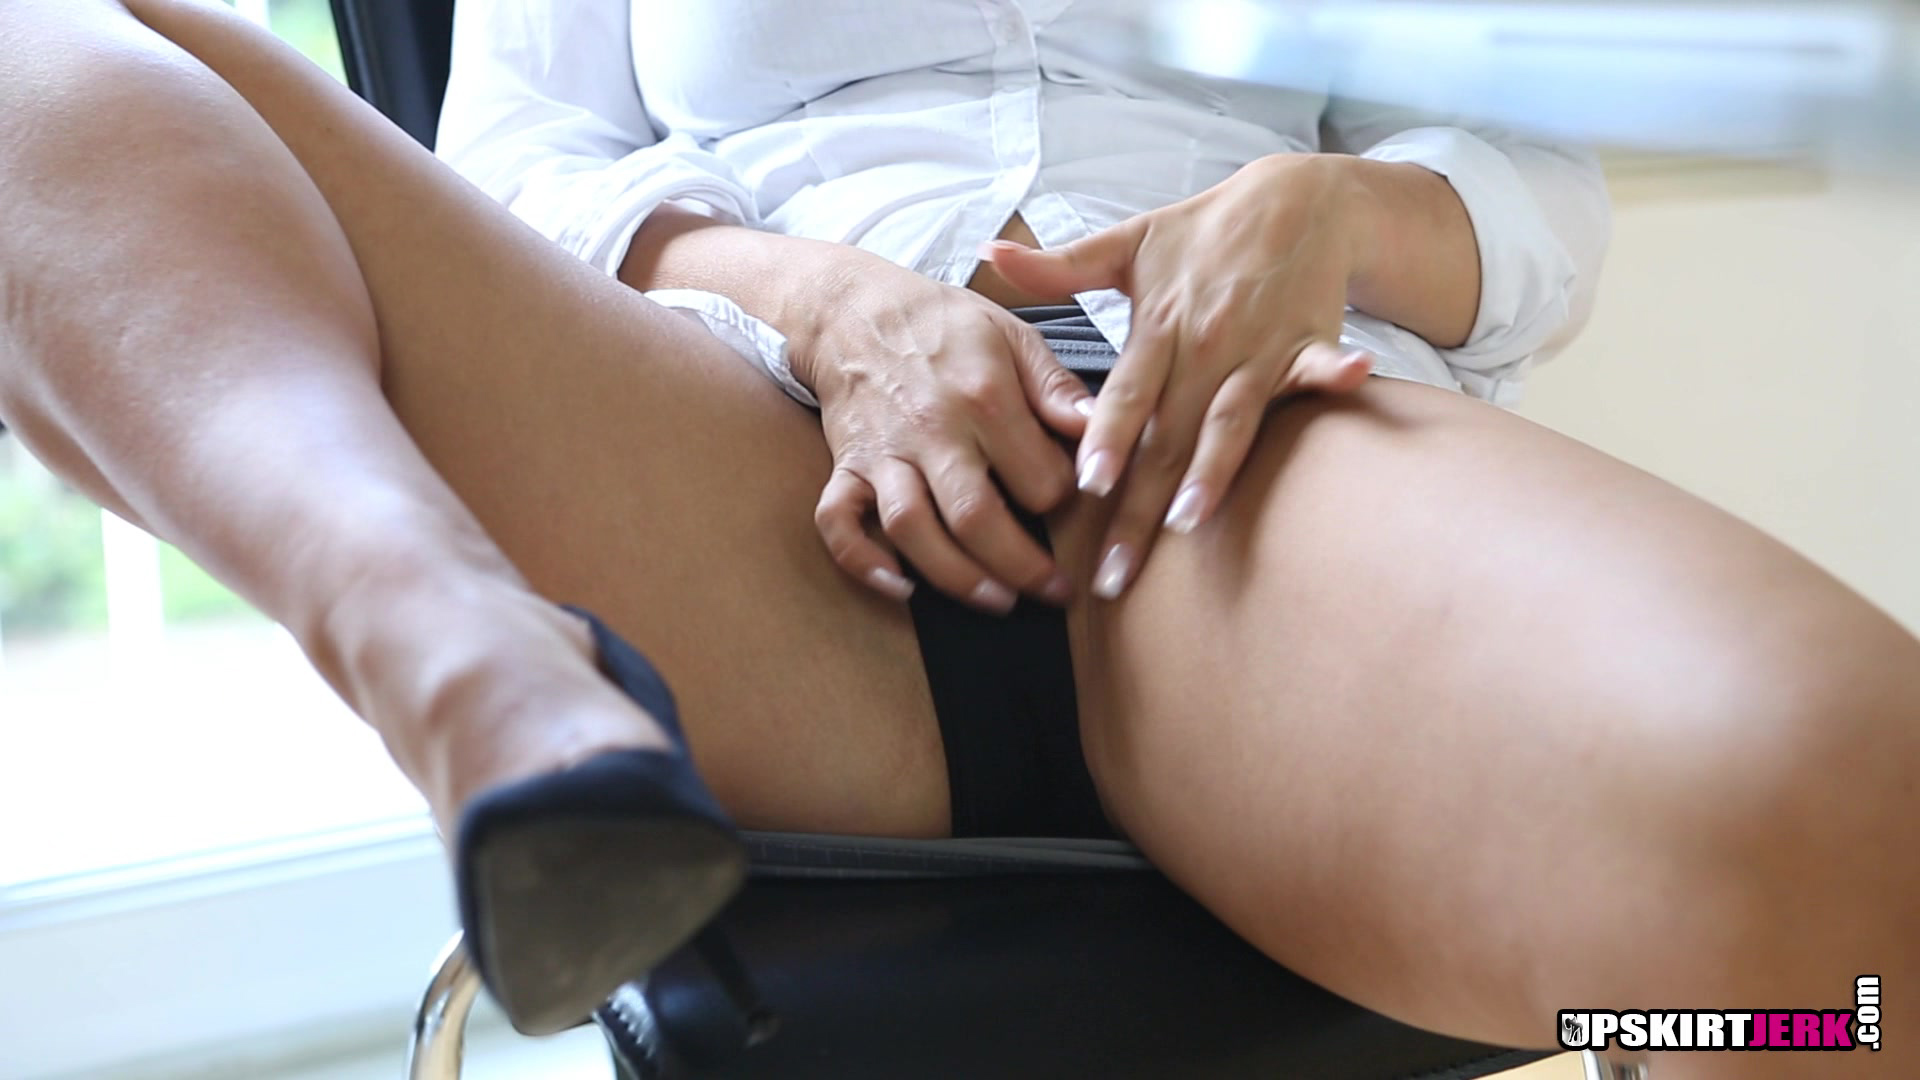 Rotten secretary teasing her british samantha pantyless to her boss #8